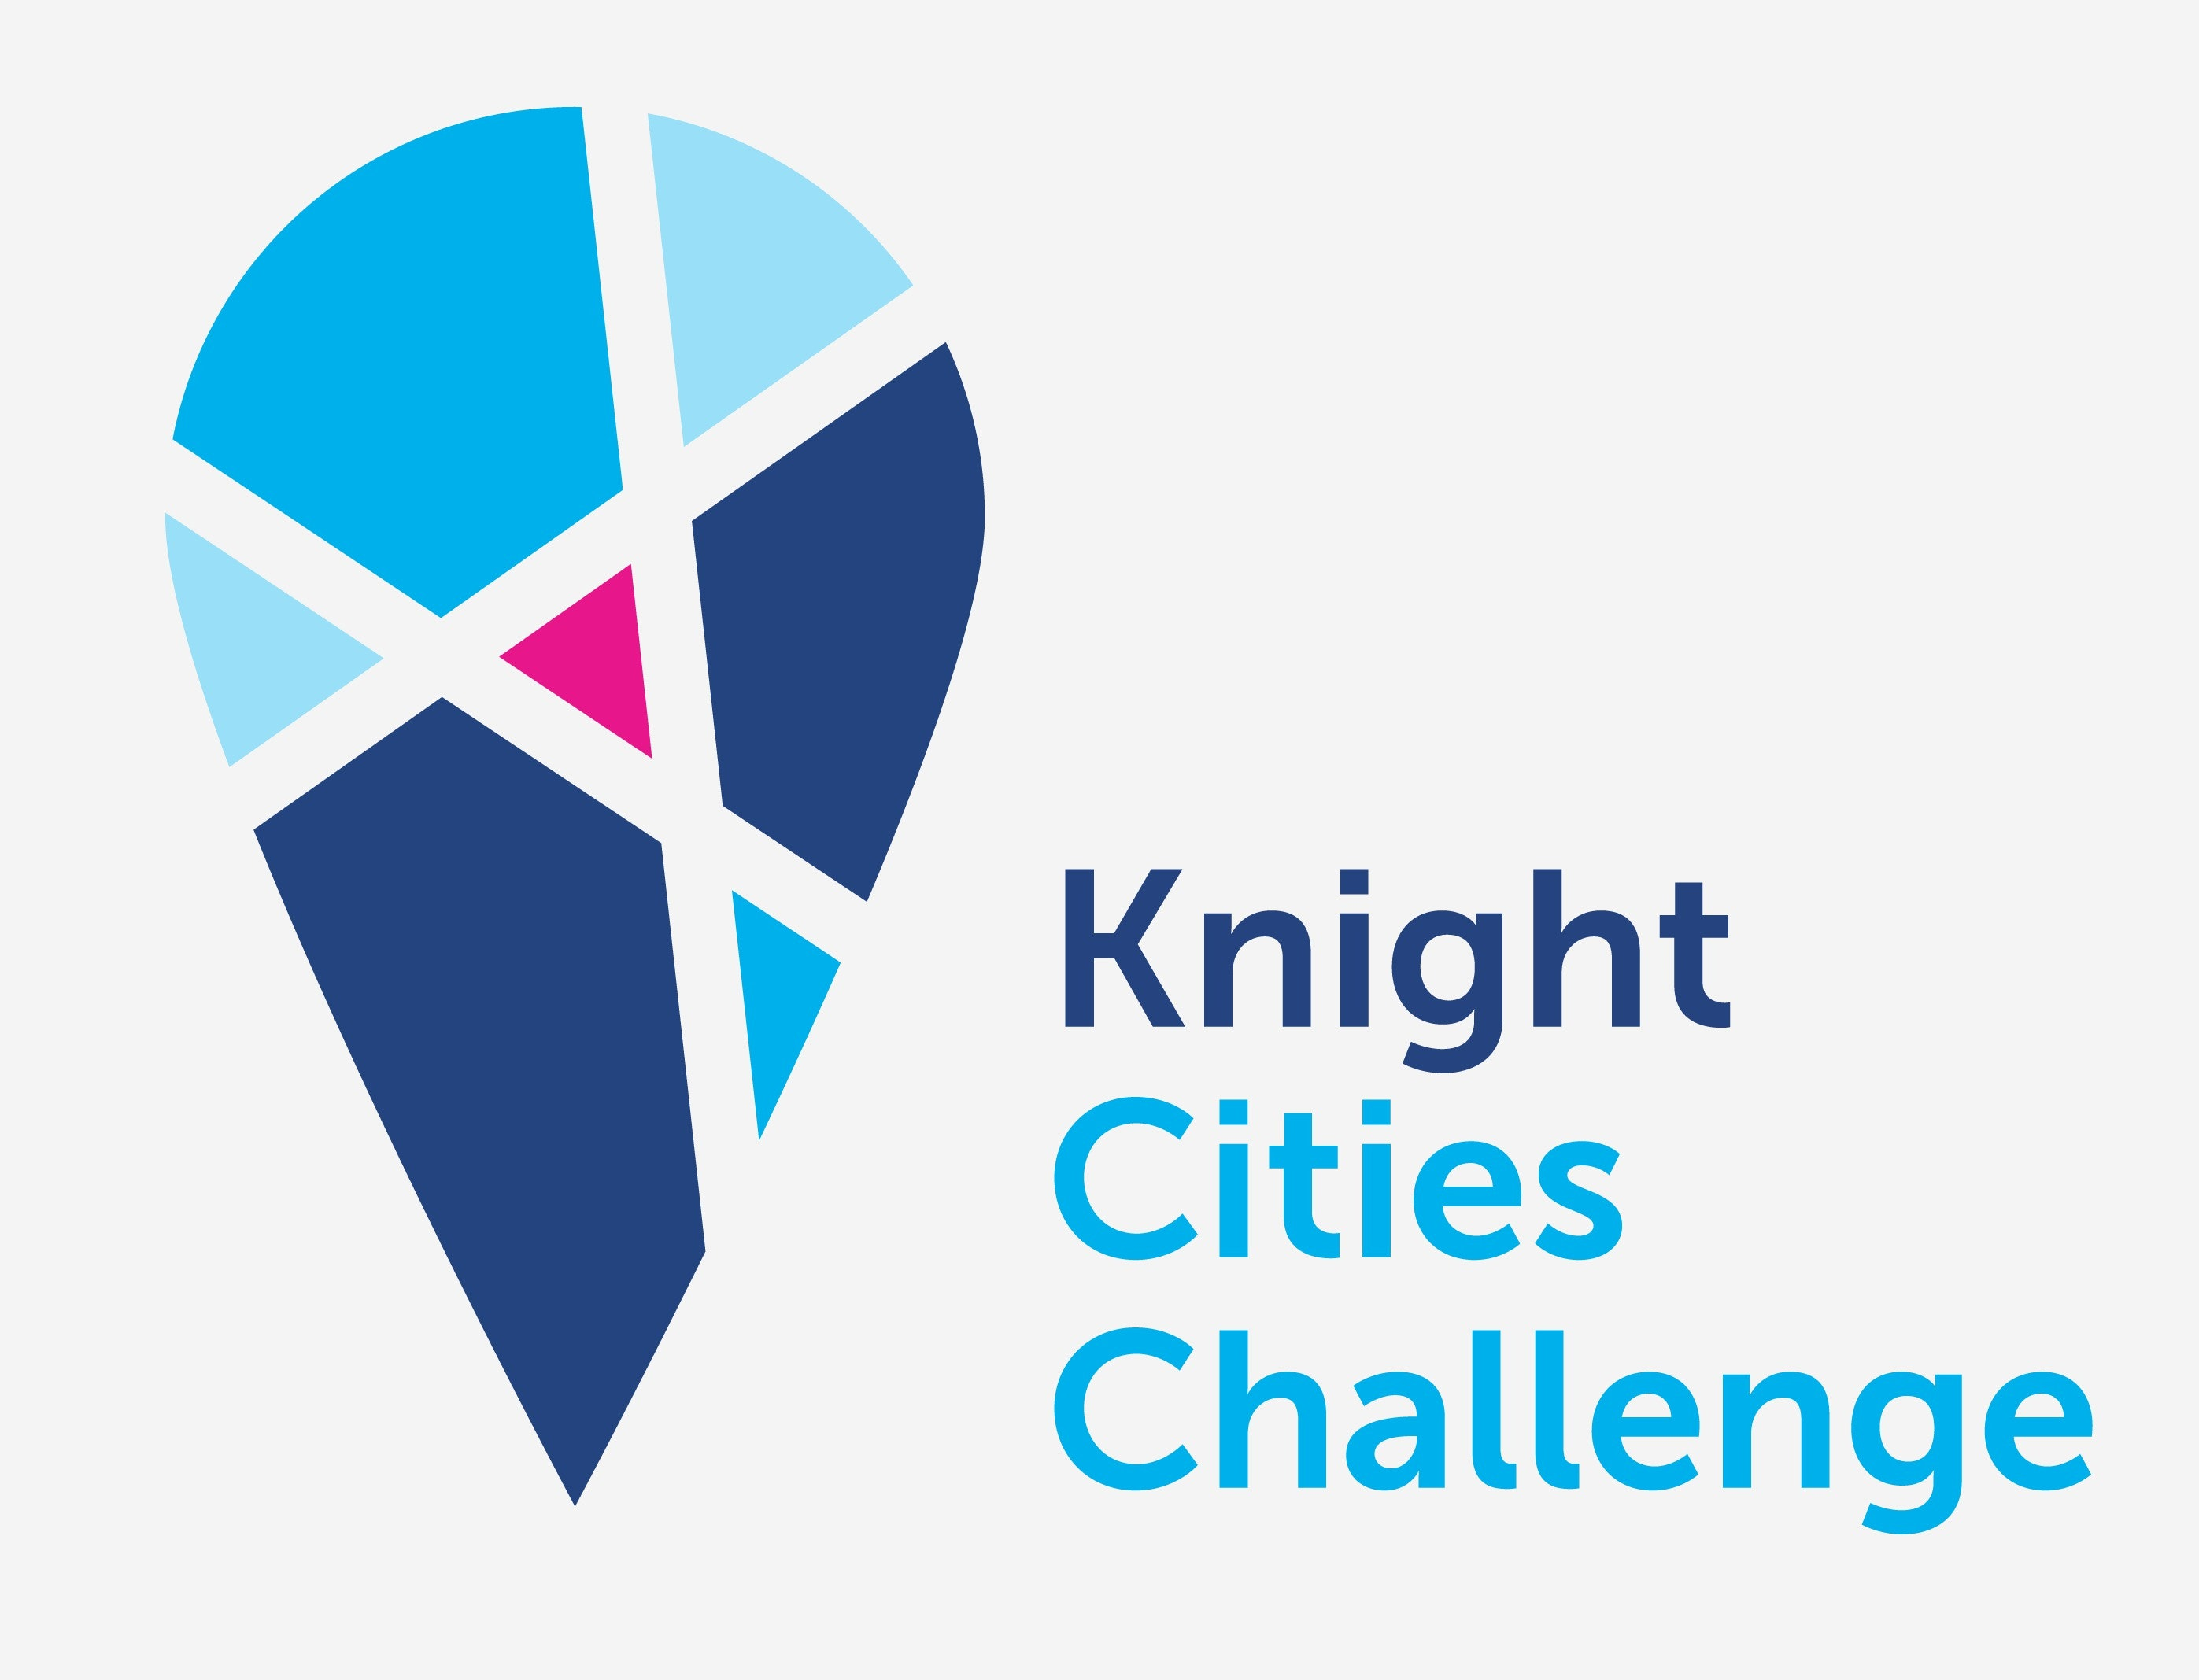 "<p><strong><em>The Knight Cities Challenge seeks new ideas from innovators who will take hold of the future of our cities. Since the first challenge opened in 2014, almost 70 projects have shared in $10 million in the 26 communities where Knight invests. Browse projects at <a href=""http://www.knightcities.org/"">knightcities.org</a> and submit your application starting Oct. 10.</em></strong></p>"